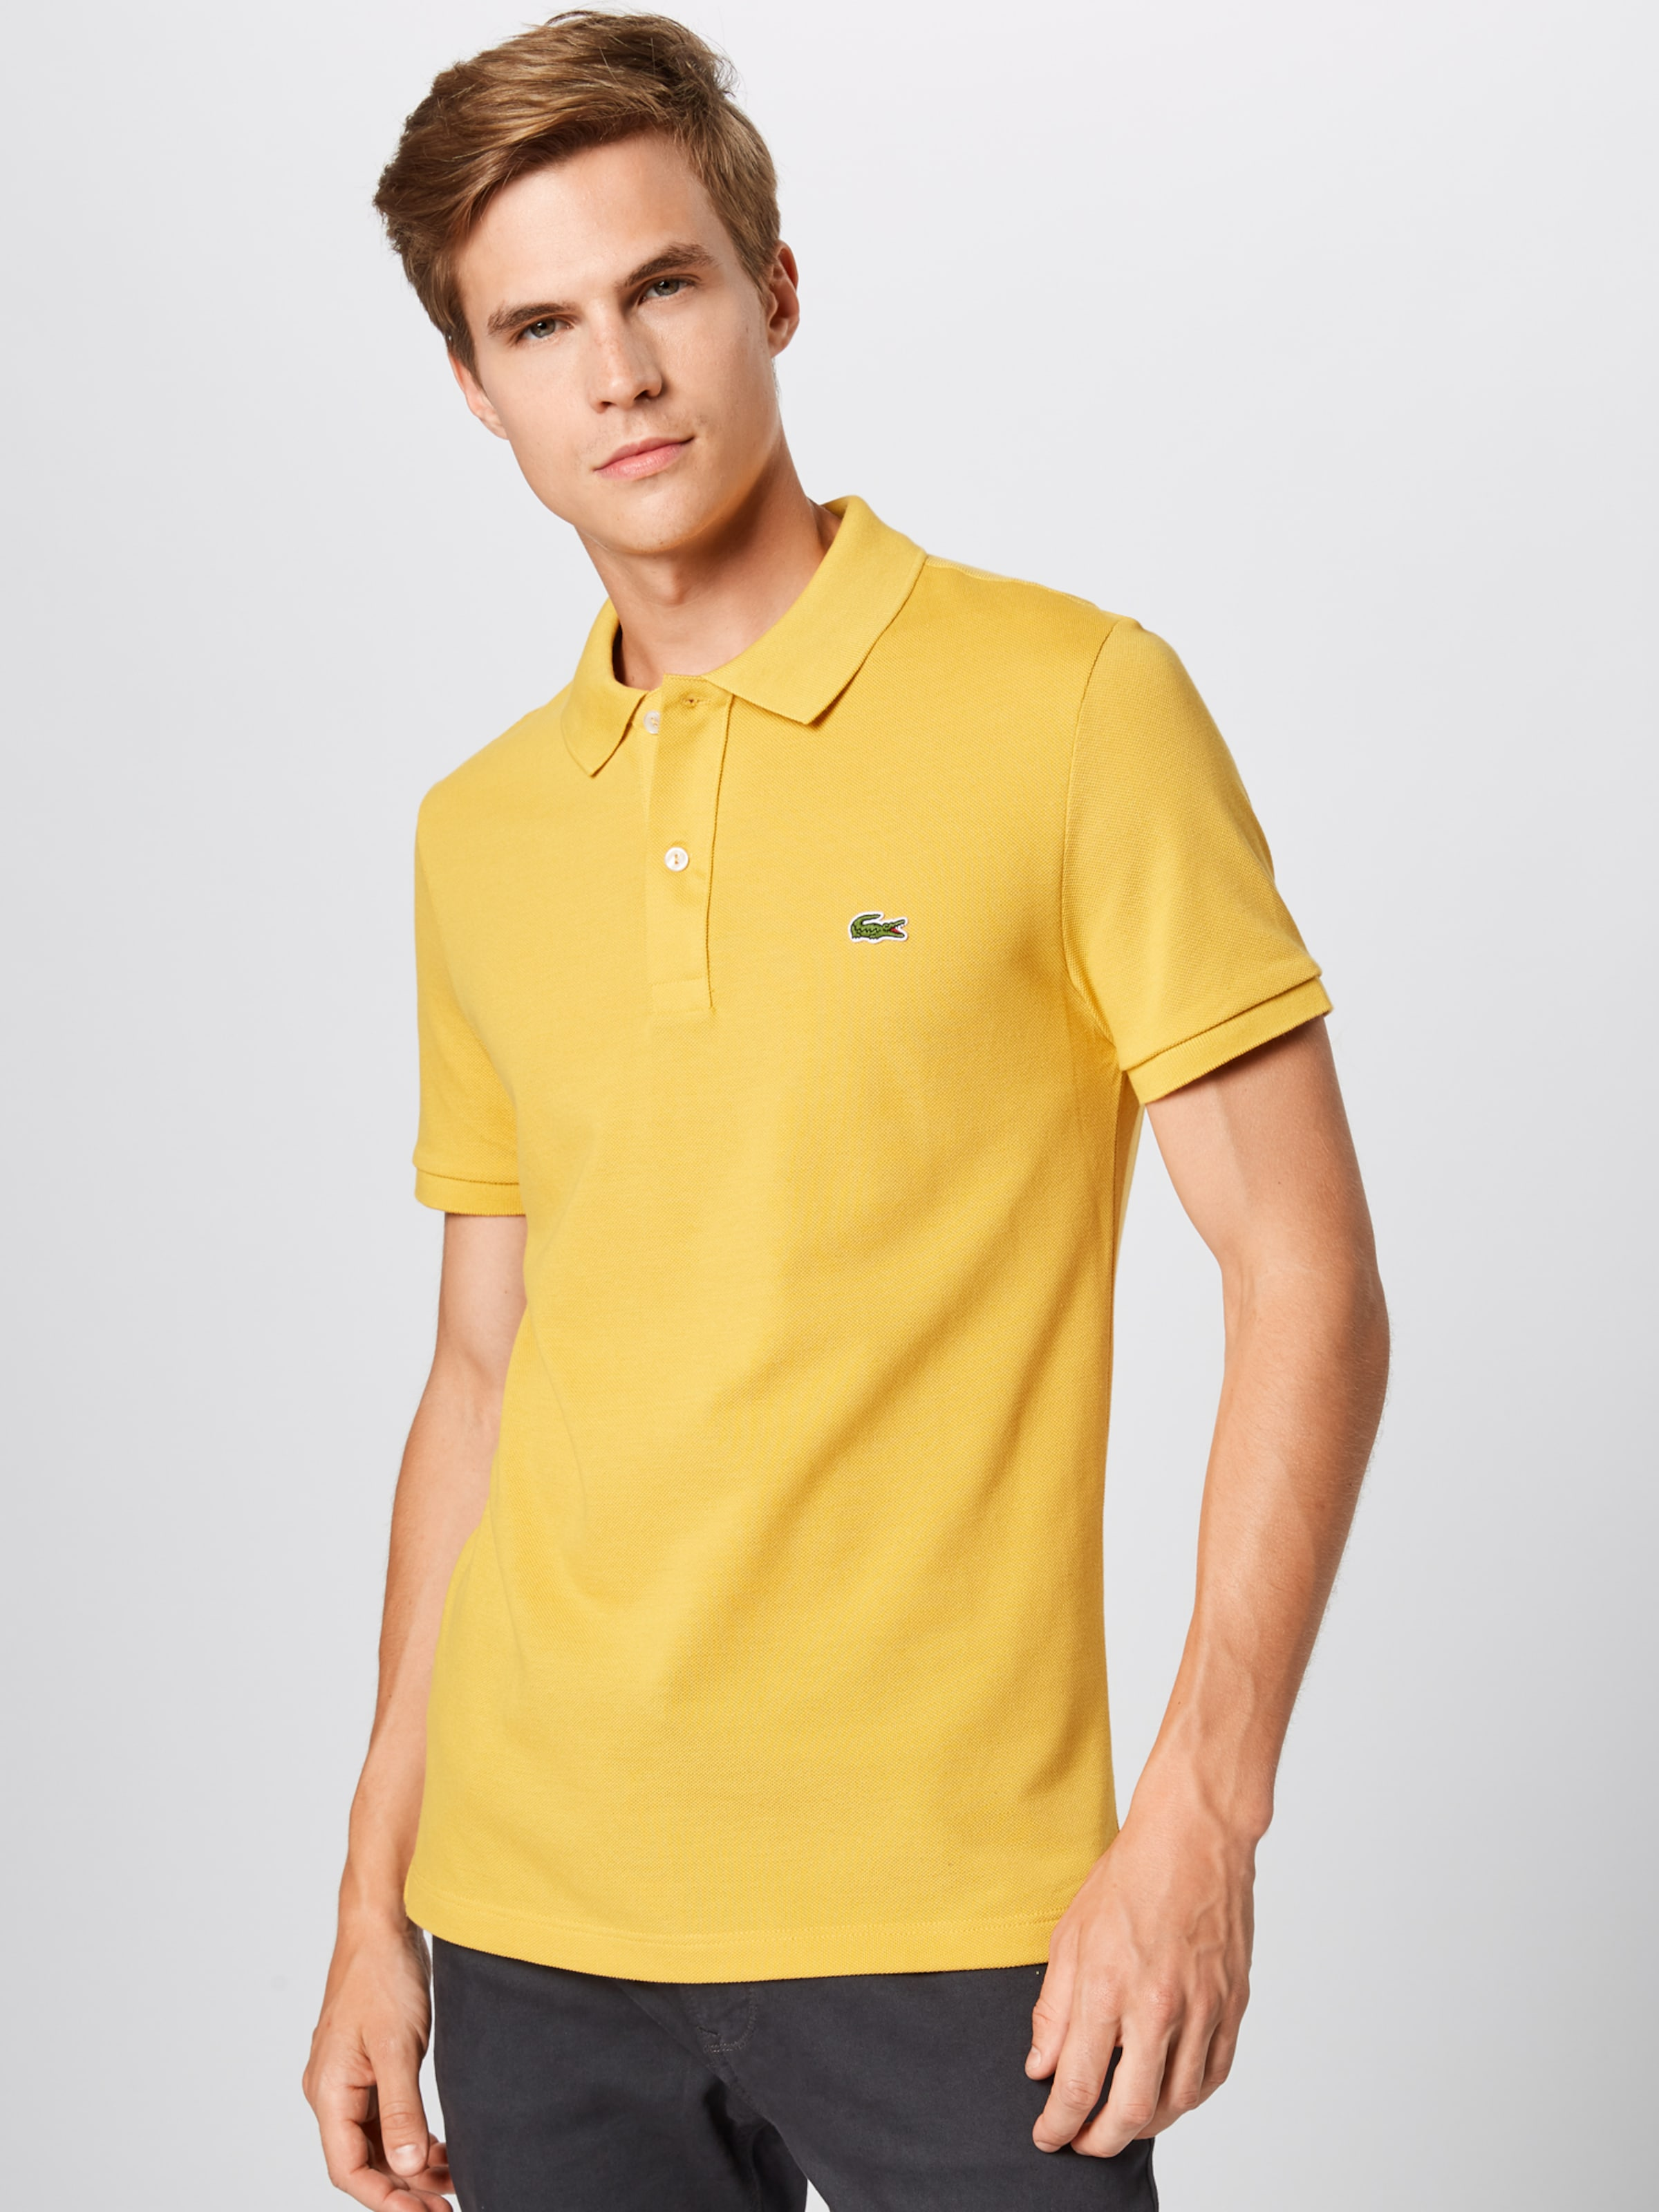 In Poloshirt Poloshirt Lacoste In Gelb Lacoste tsrQdh